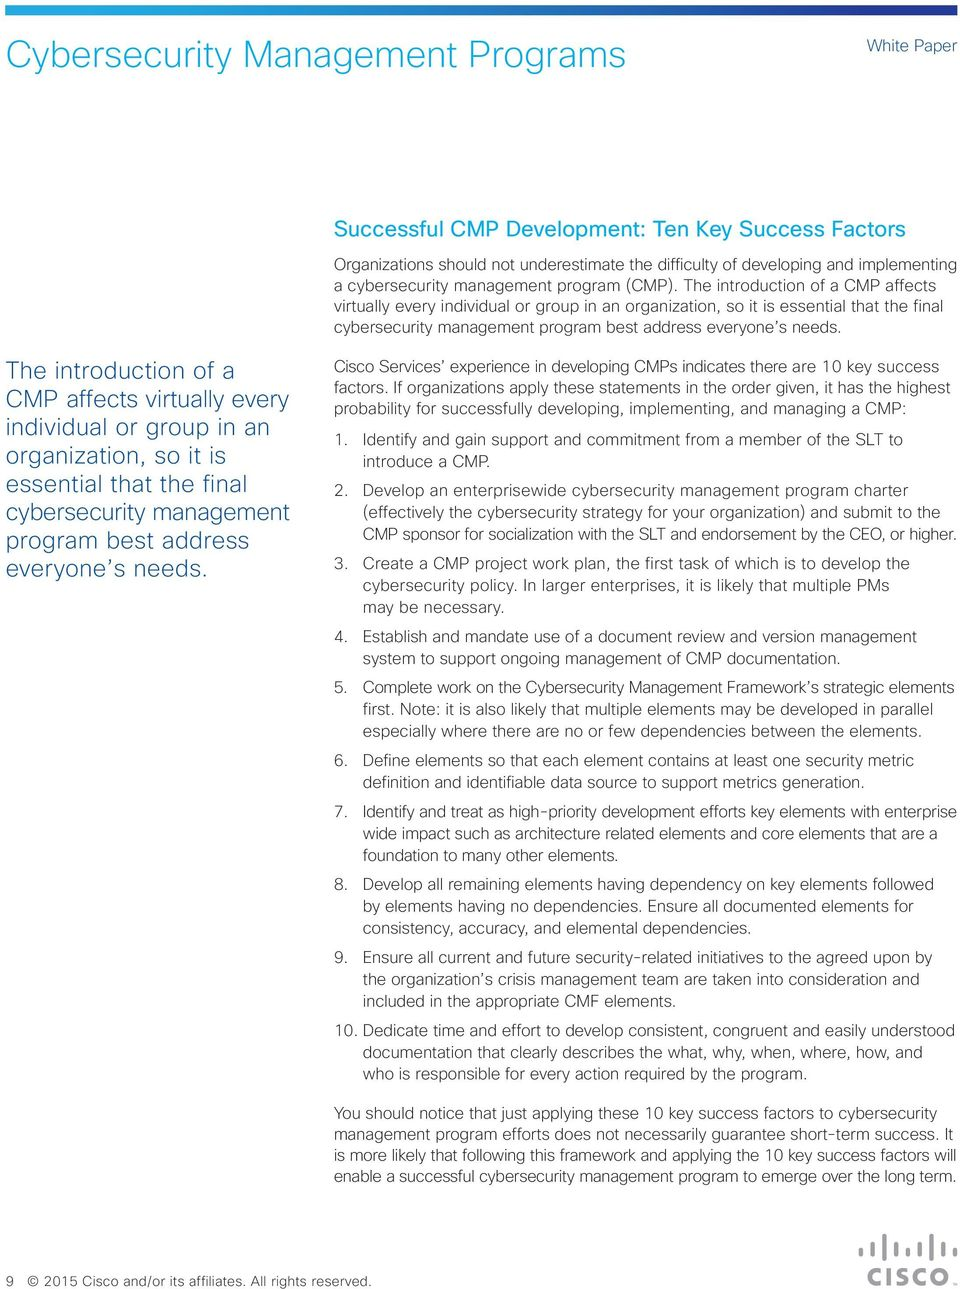 Cisco Services experience in developing CMPs indicates there are 10 key success factors.